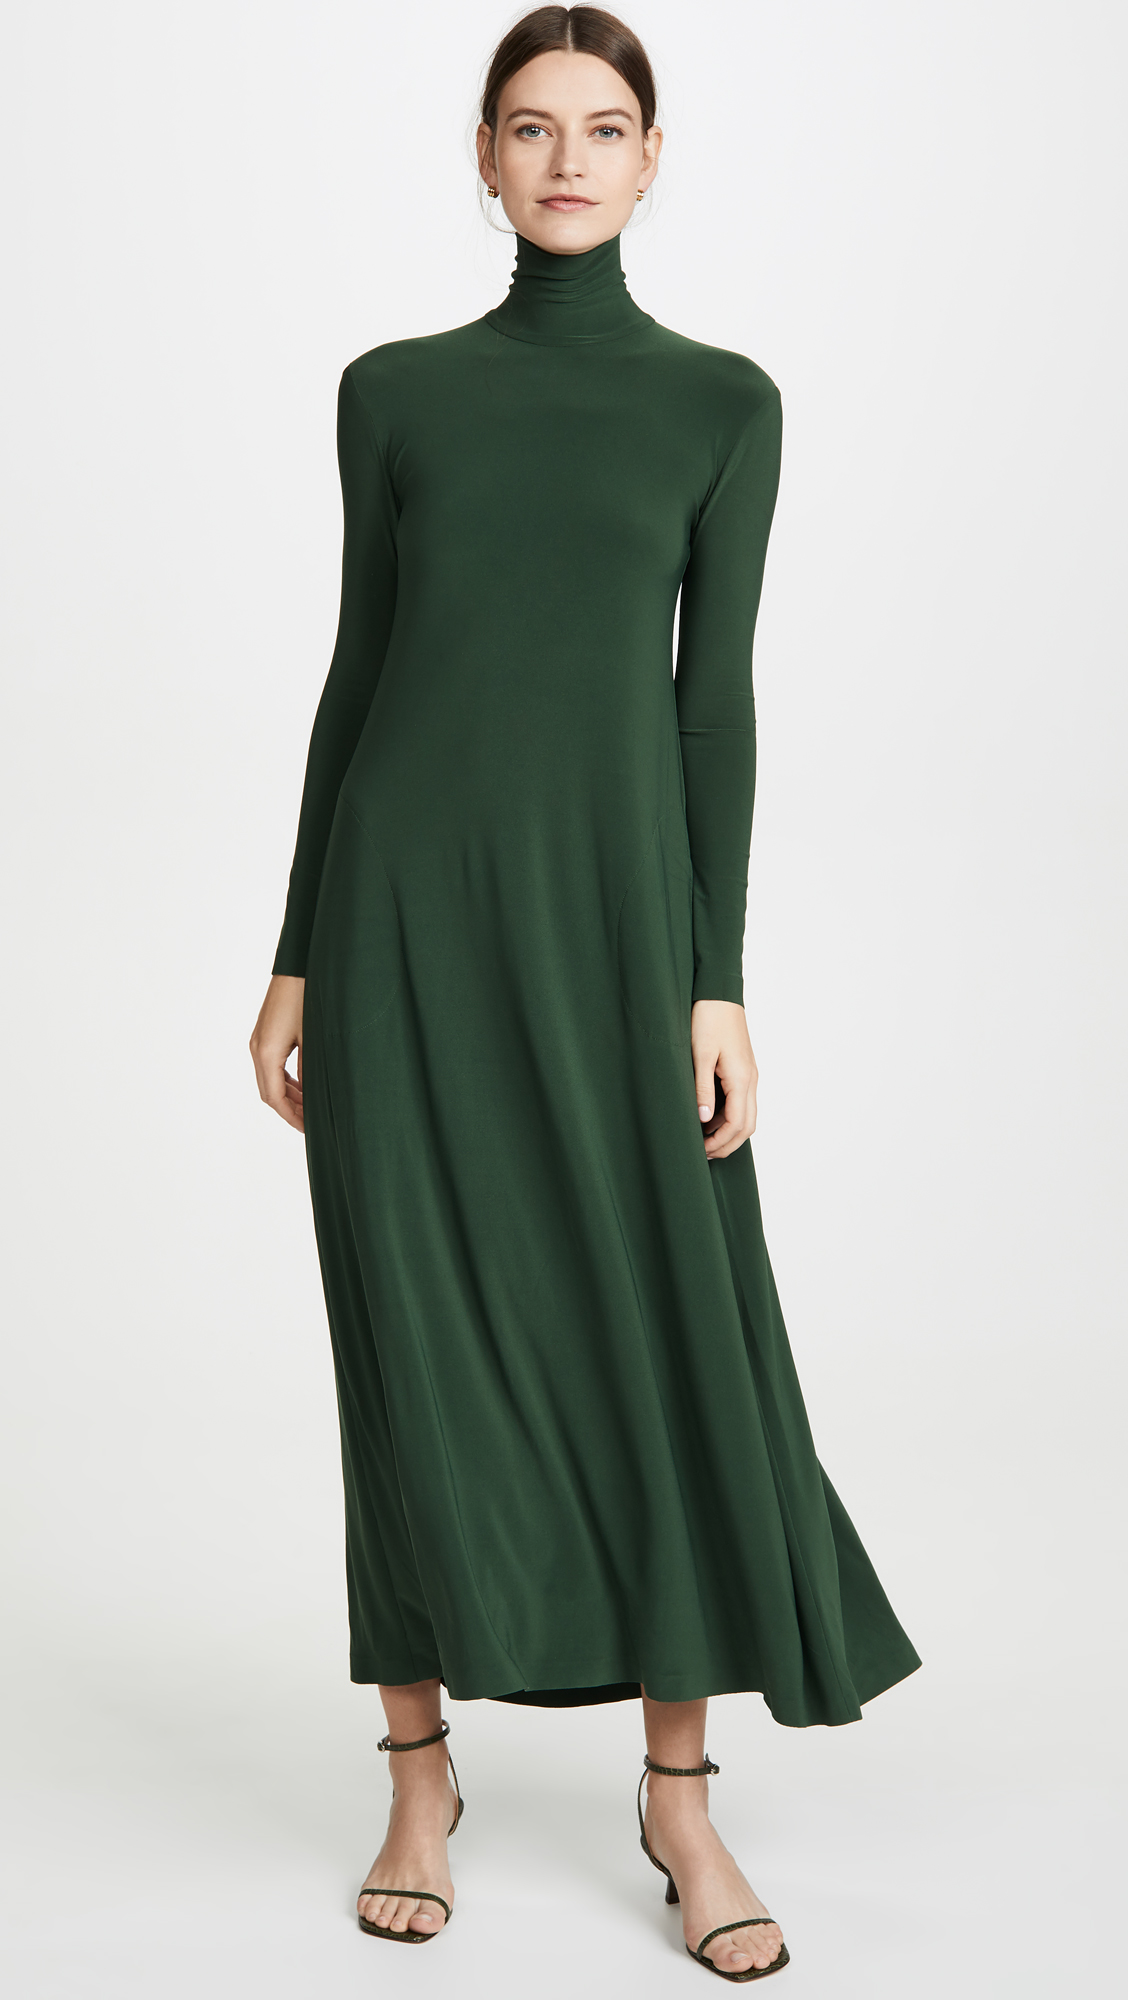 Green Turtleneck Swing Dress